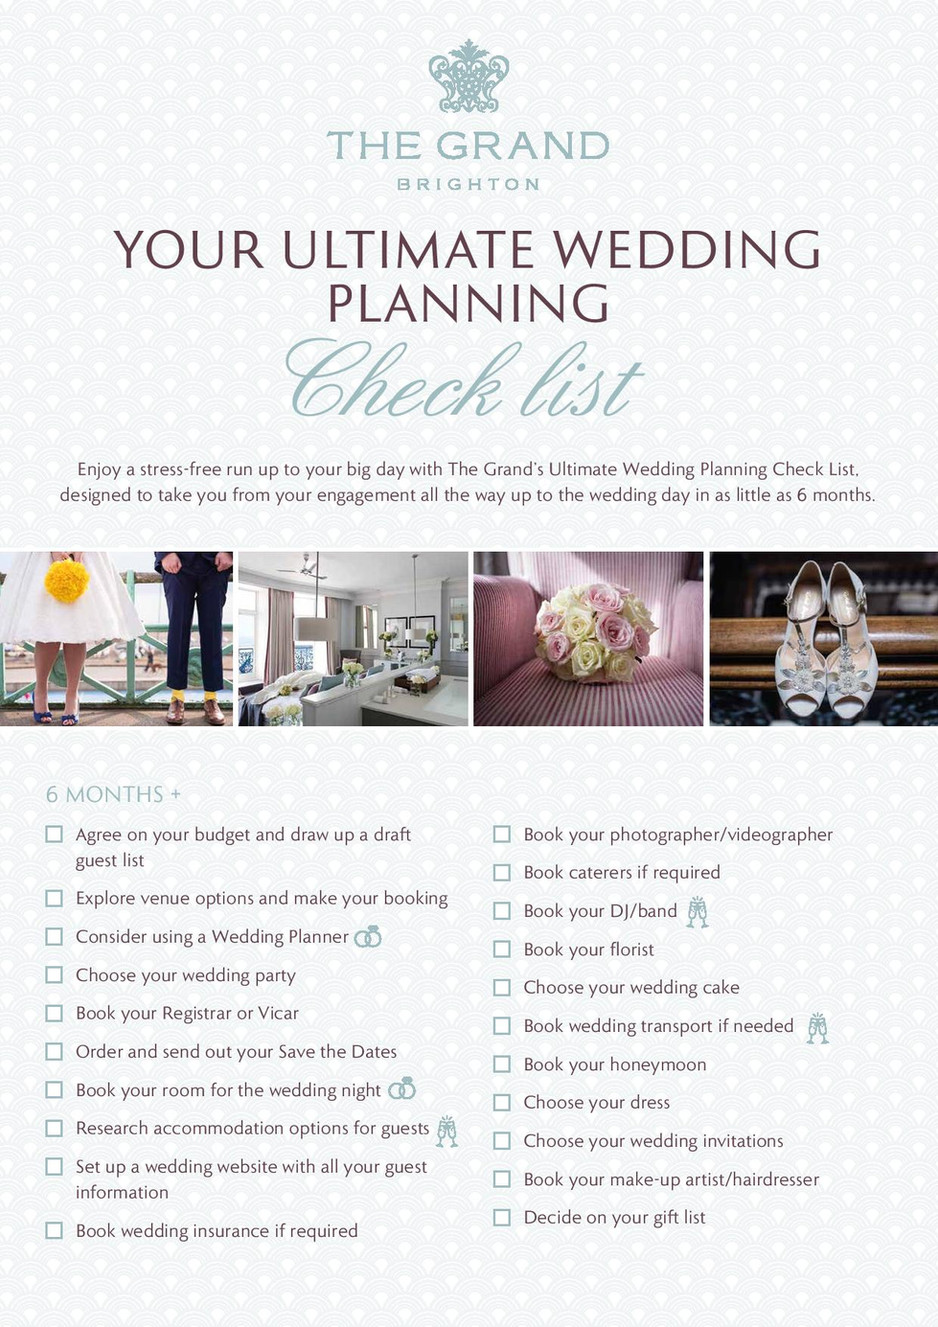 The Grand's Ultimate Wedding Planning Check List